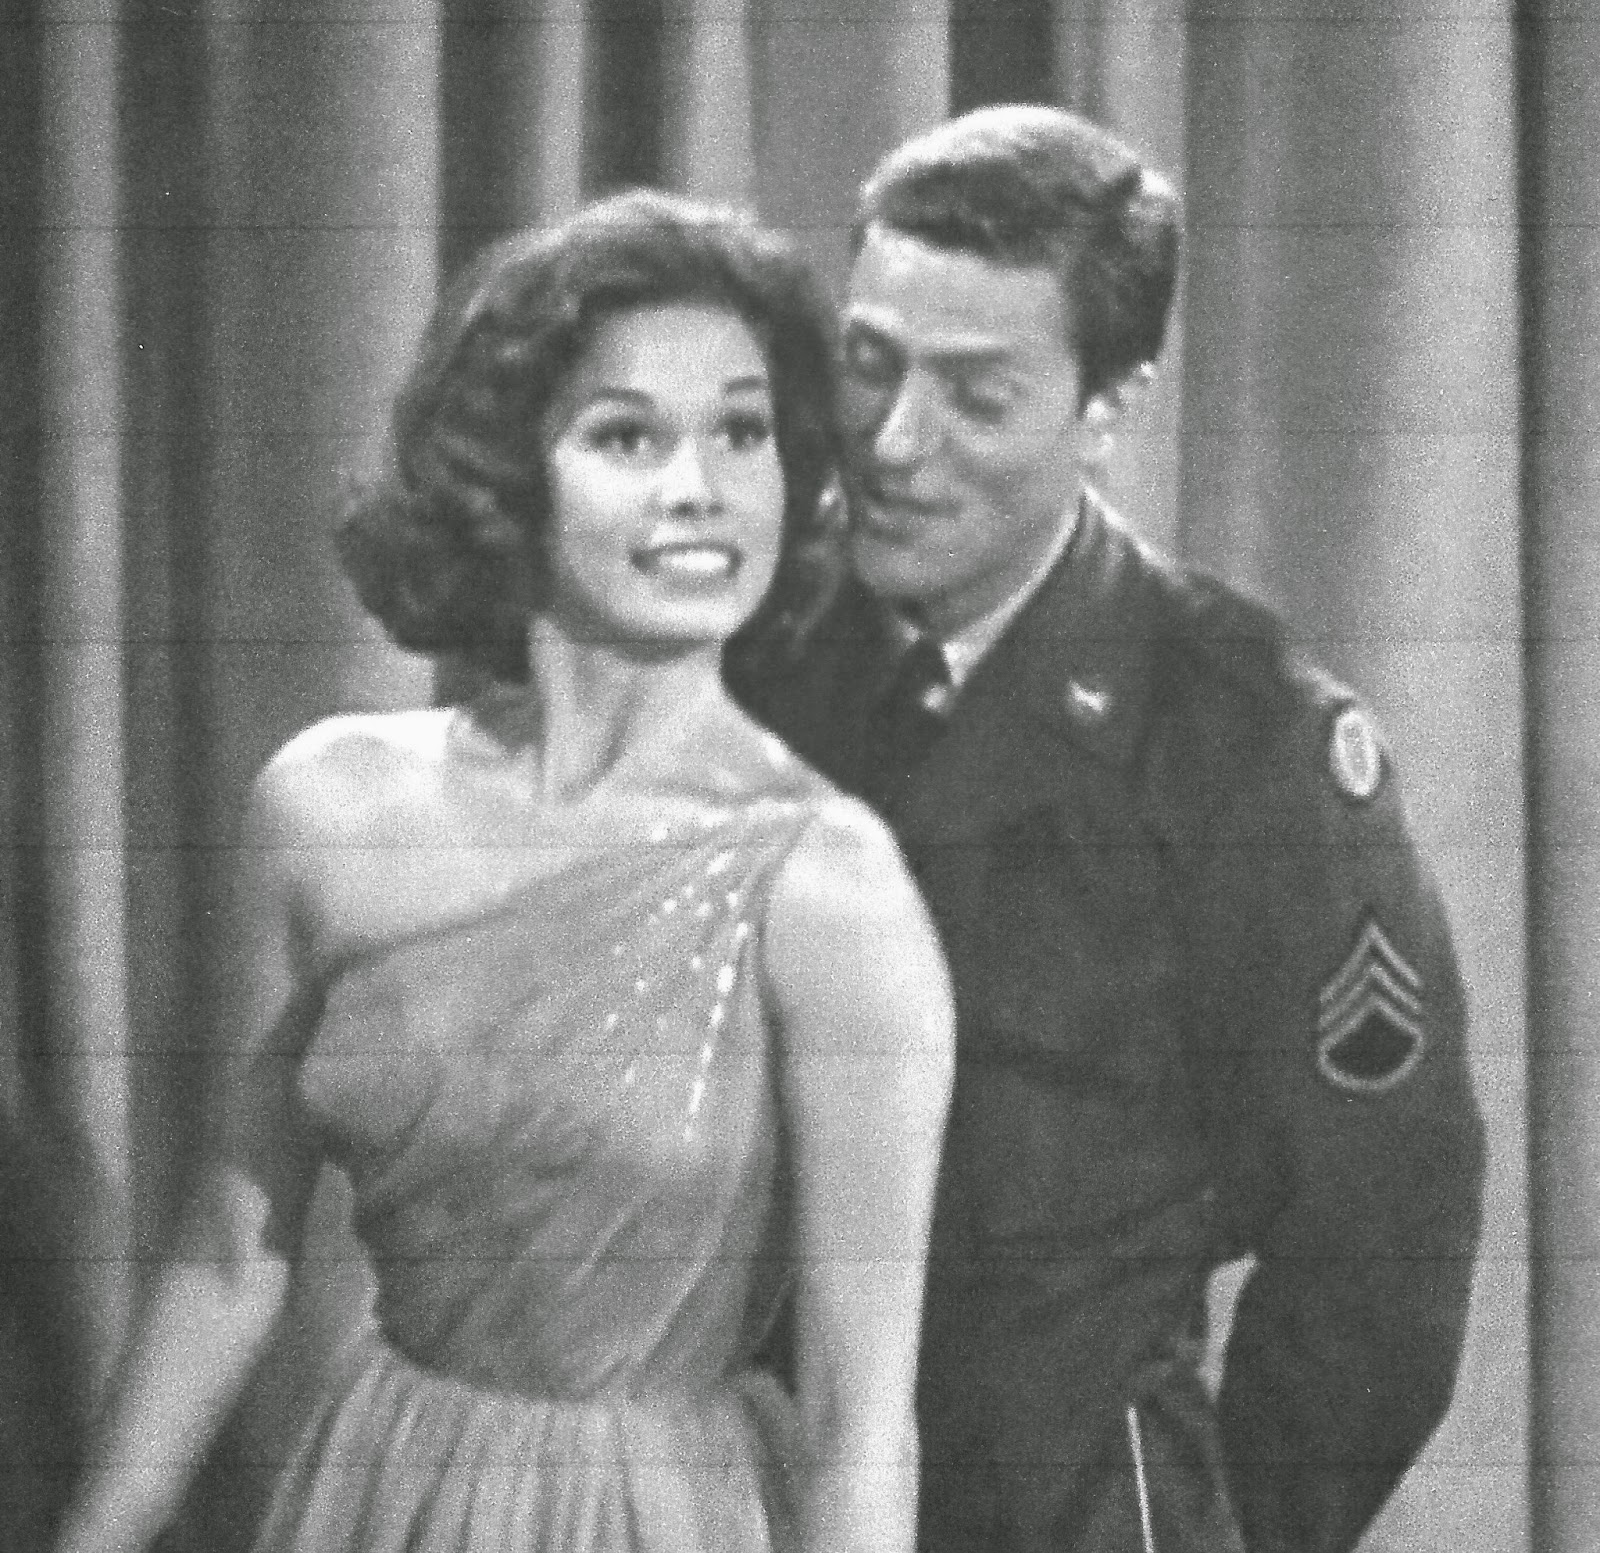 Dick van Dyke worldwartwo.filminspector.com